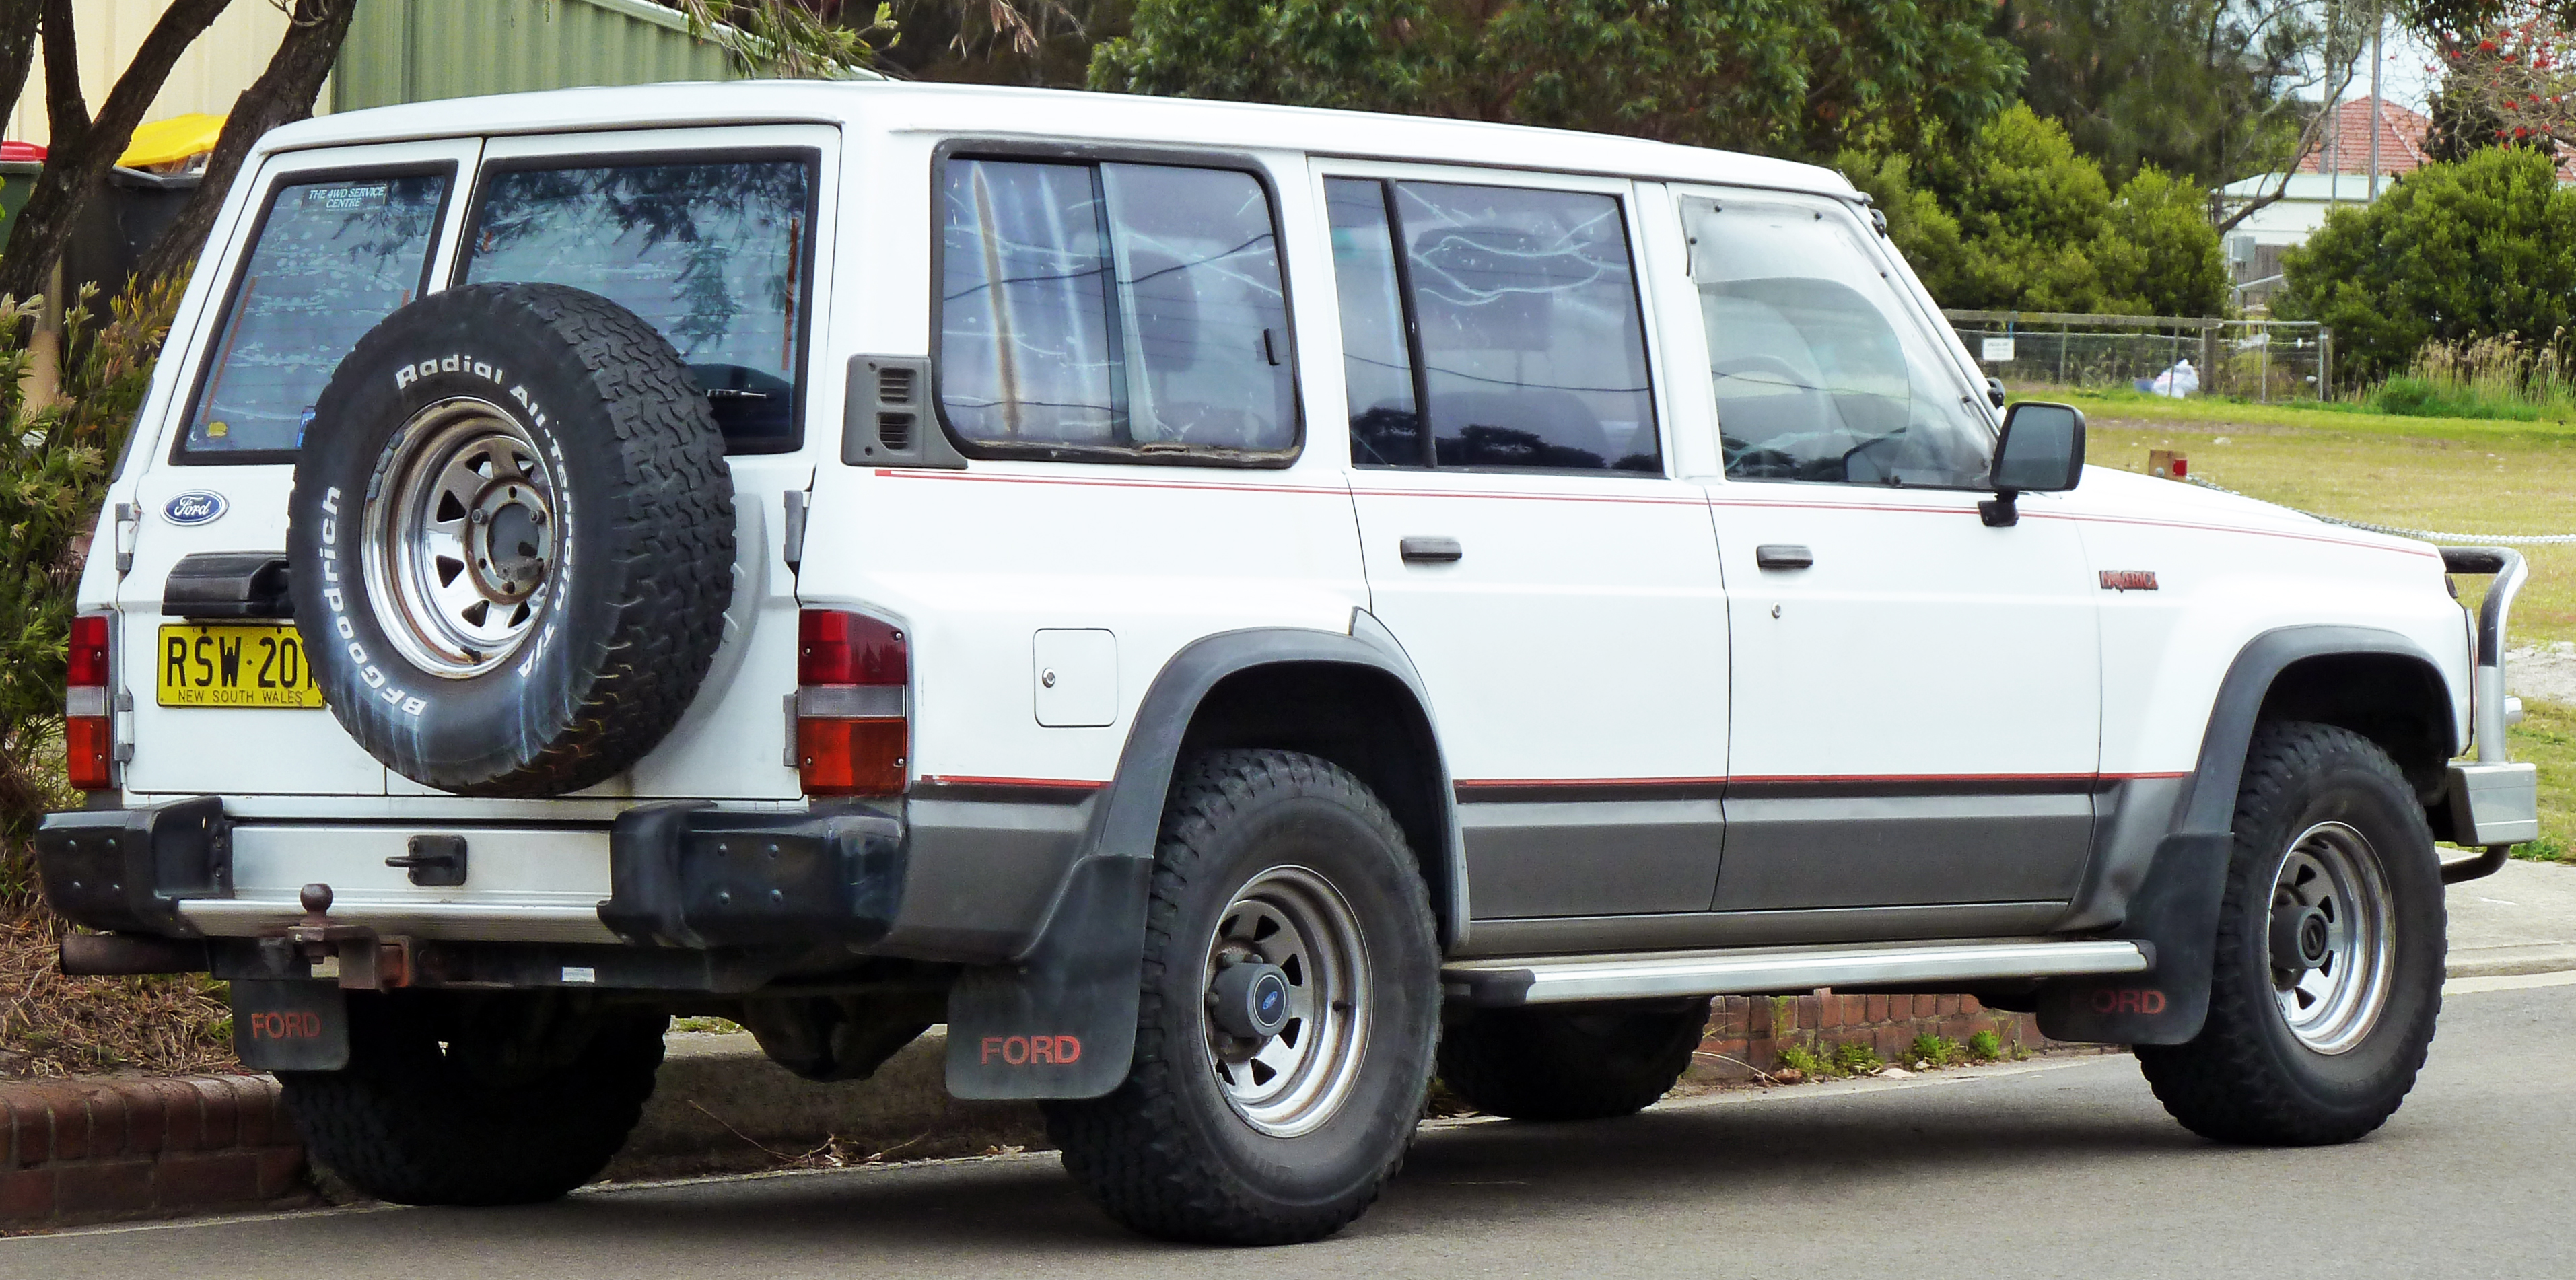 Nissan Safari IV (Y60) 1989 - 1997 SUV 5 door #3